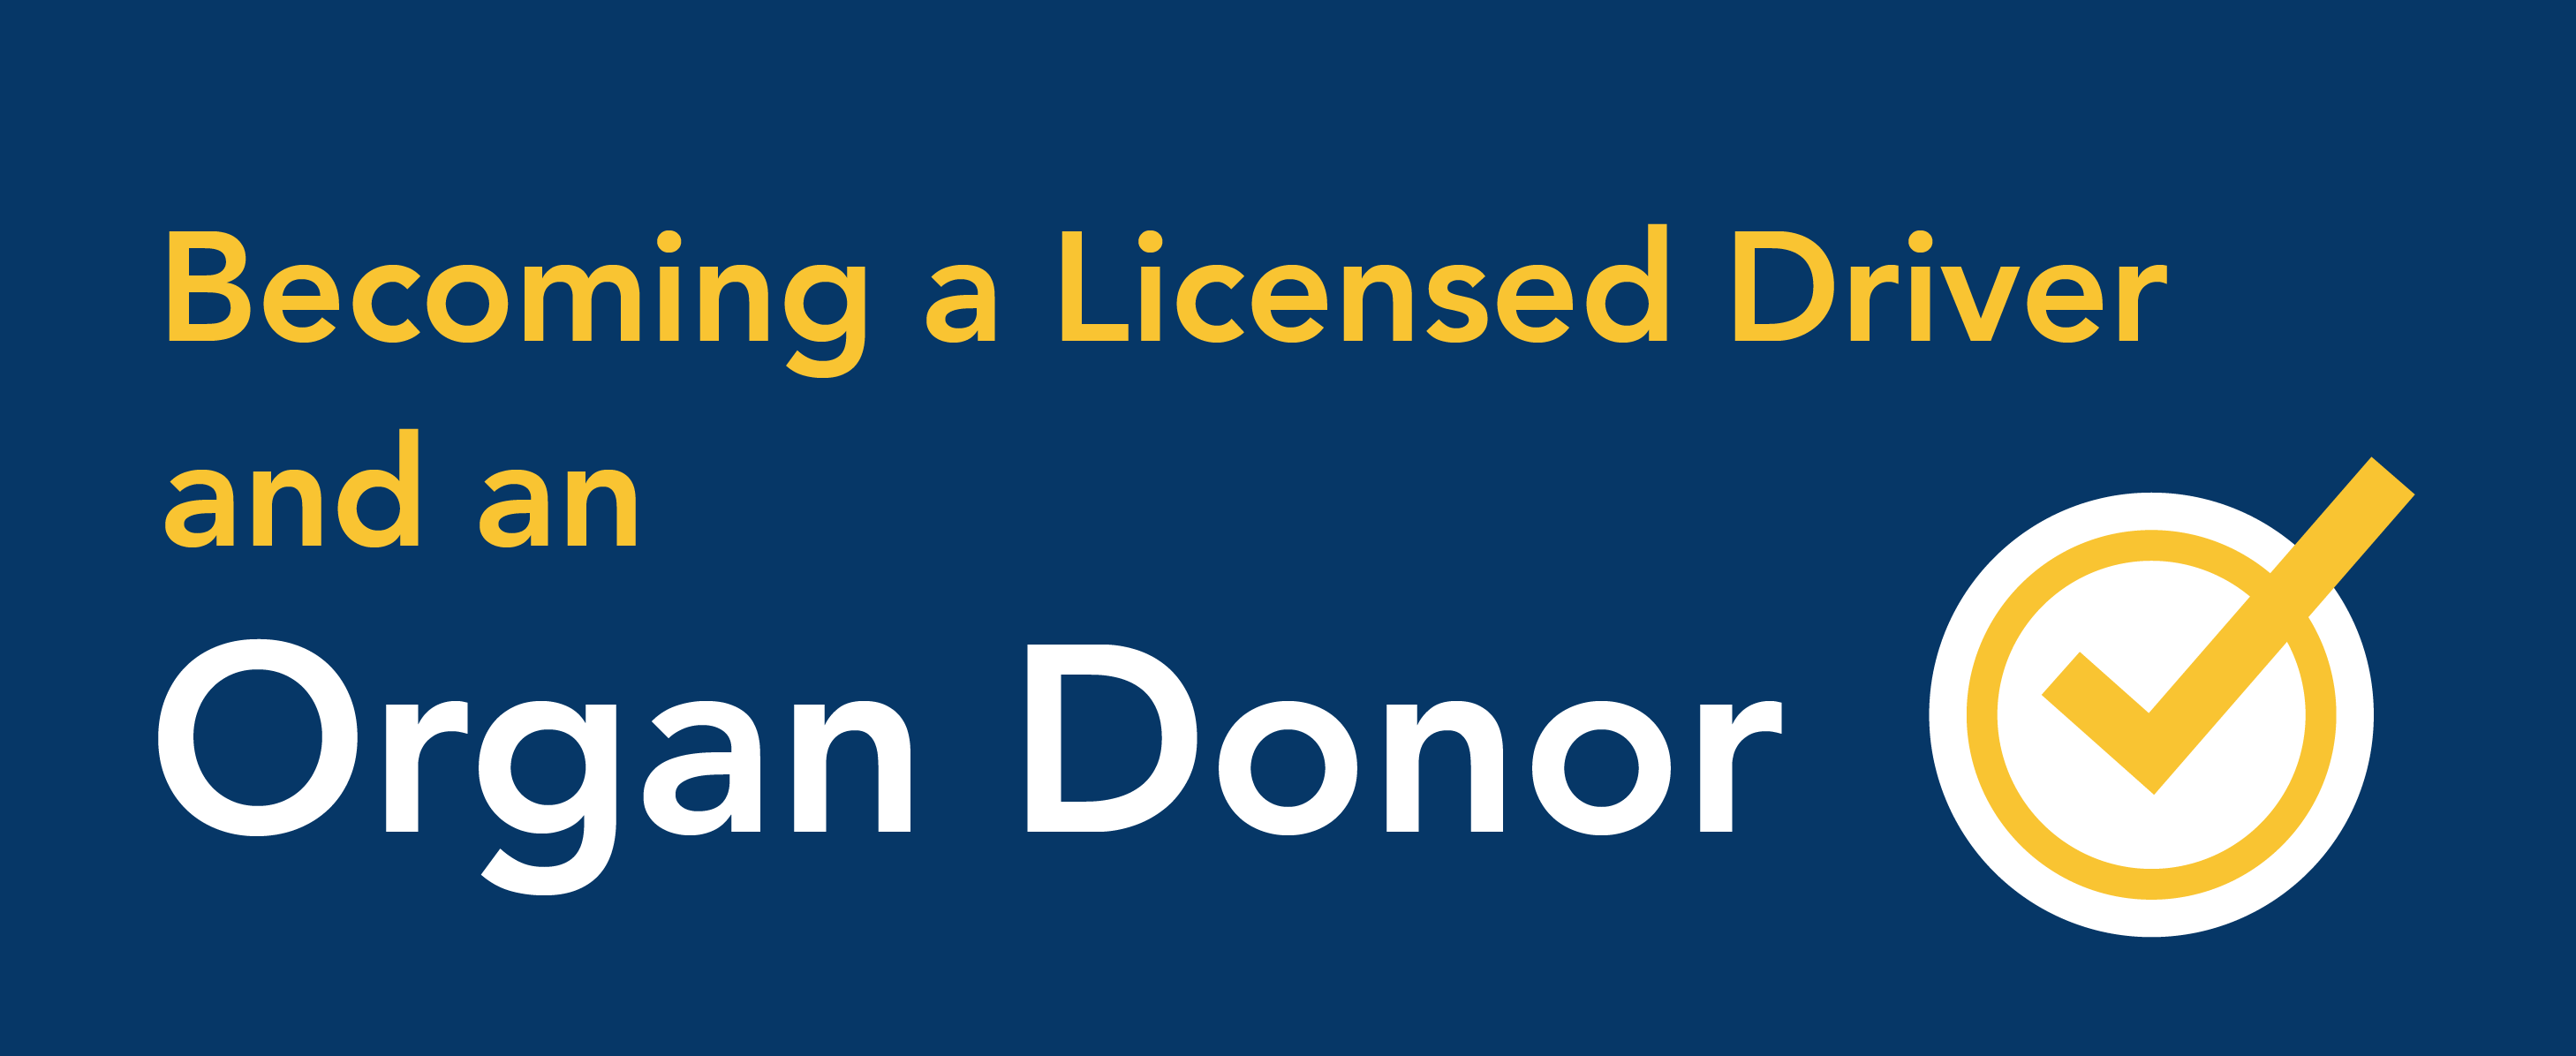 Becoming a licensed driver and an organ donor.